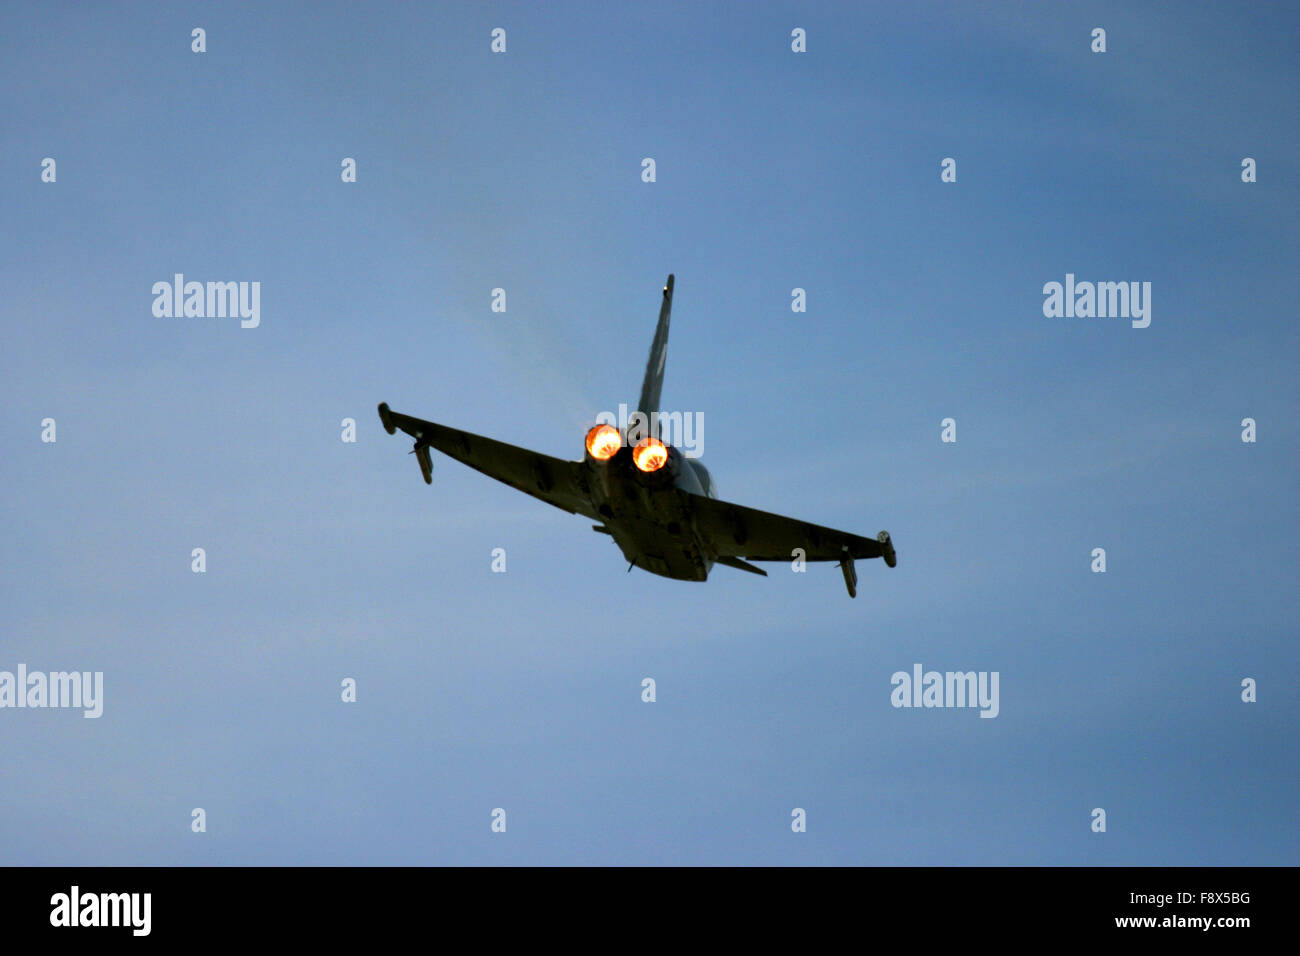 Eurofighter in flight at UK air show Stock Photo